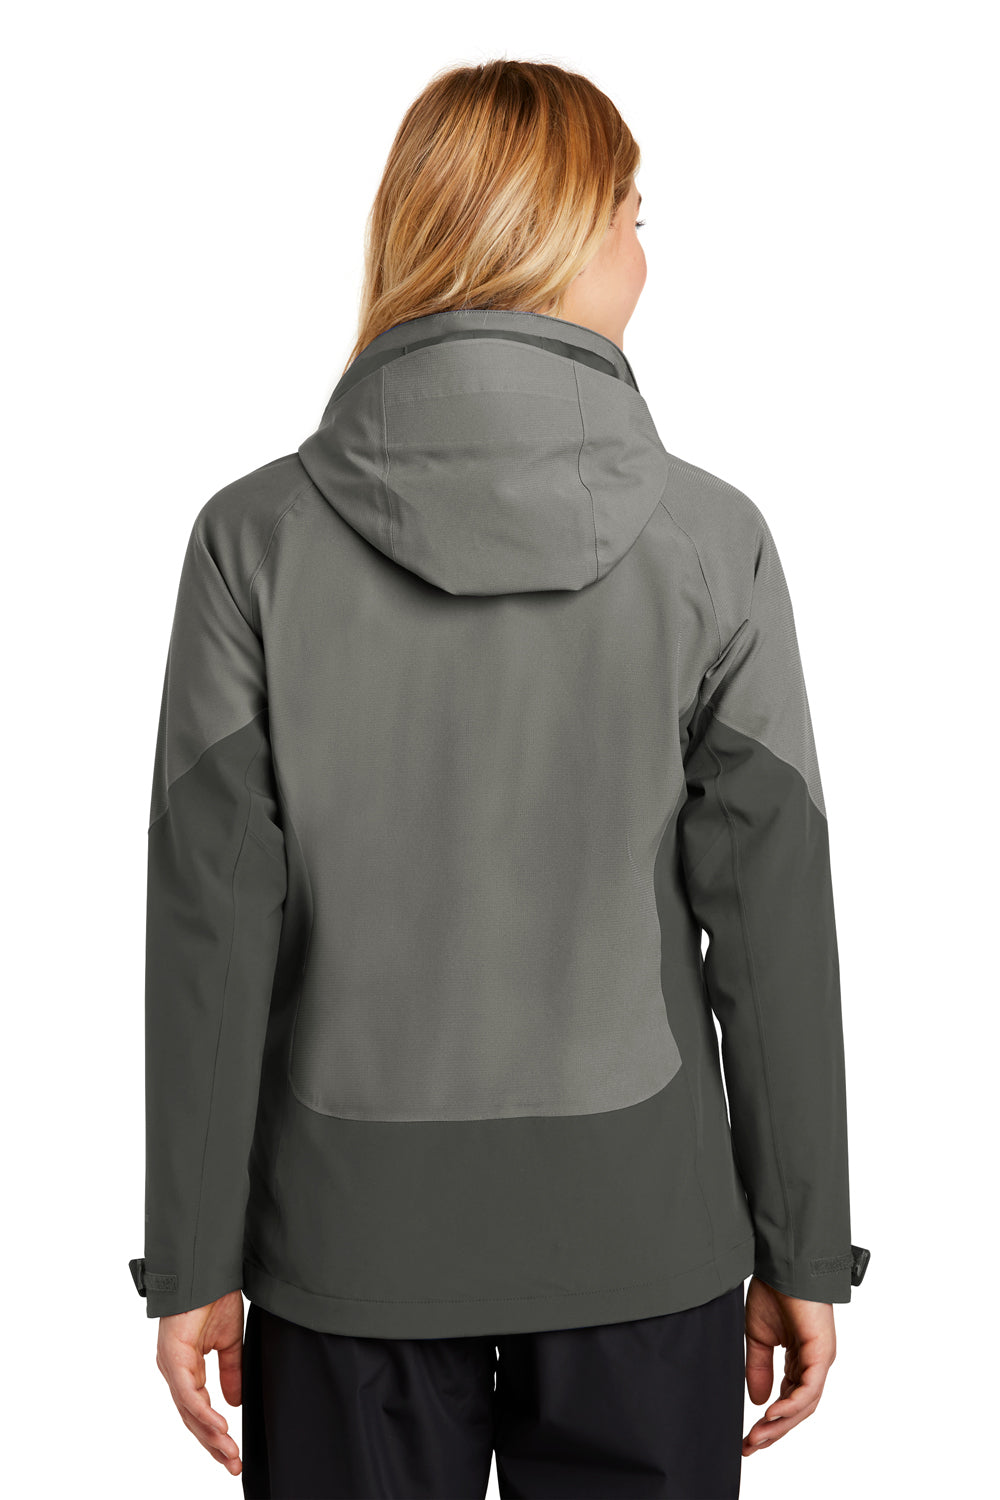 Eddie Bauer EB559 Womens WeatherEdge Waterproof Full Zip Hooded Jacket Metal Grey Back